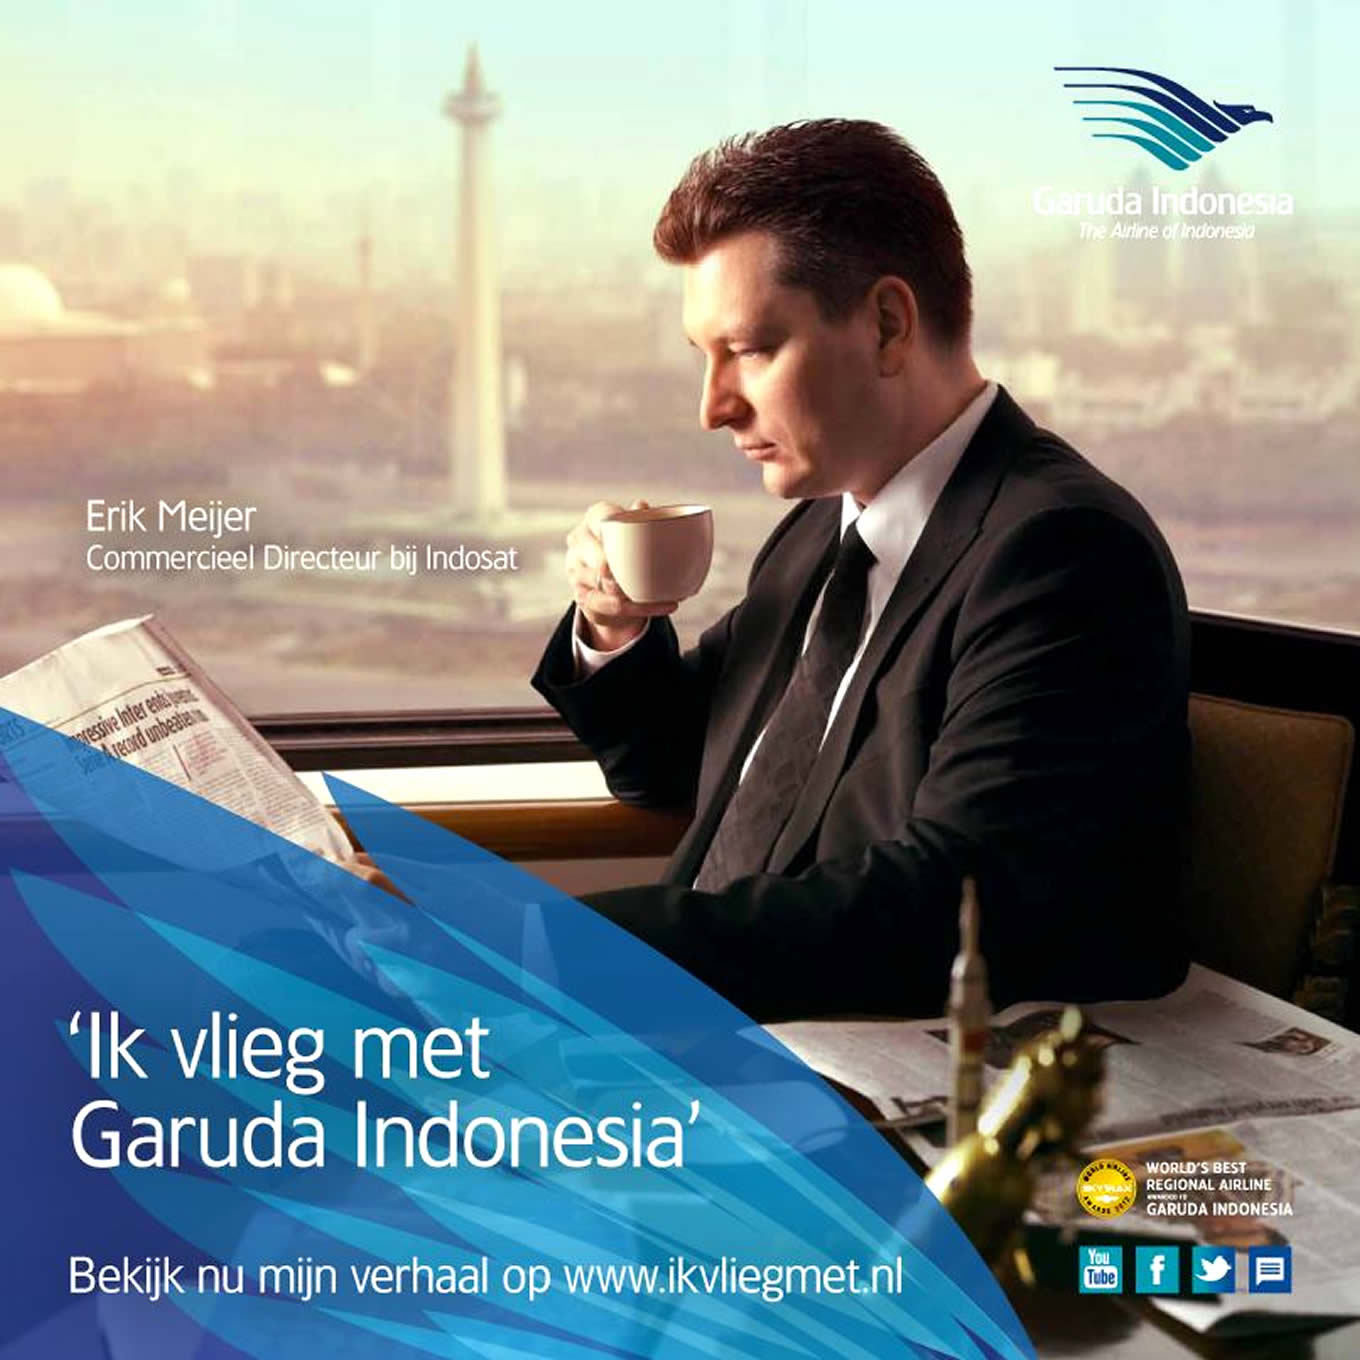 Erik Meijer, Ik Vlieg Met Travel Marketing Campaign by Garuda Indonesia Netherland